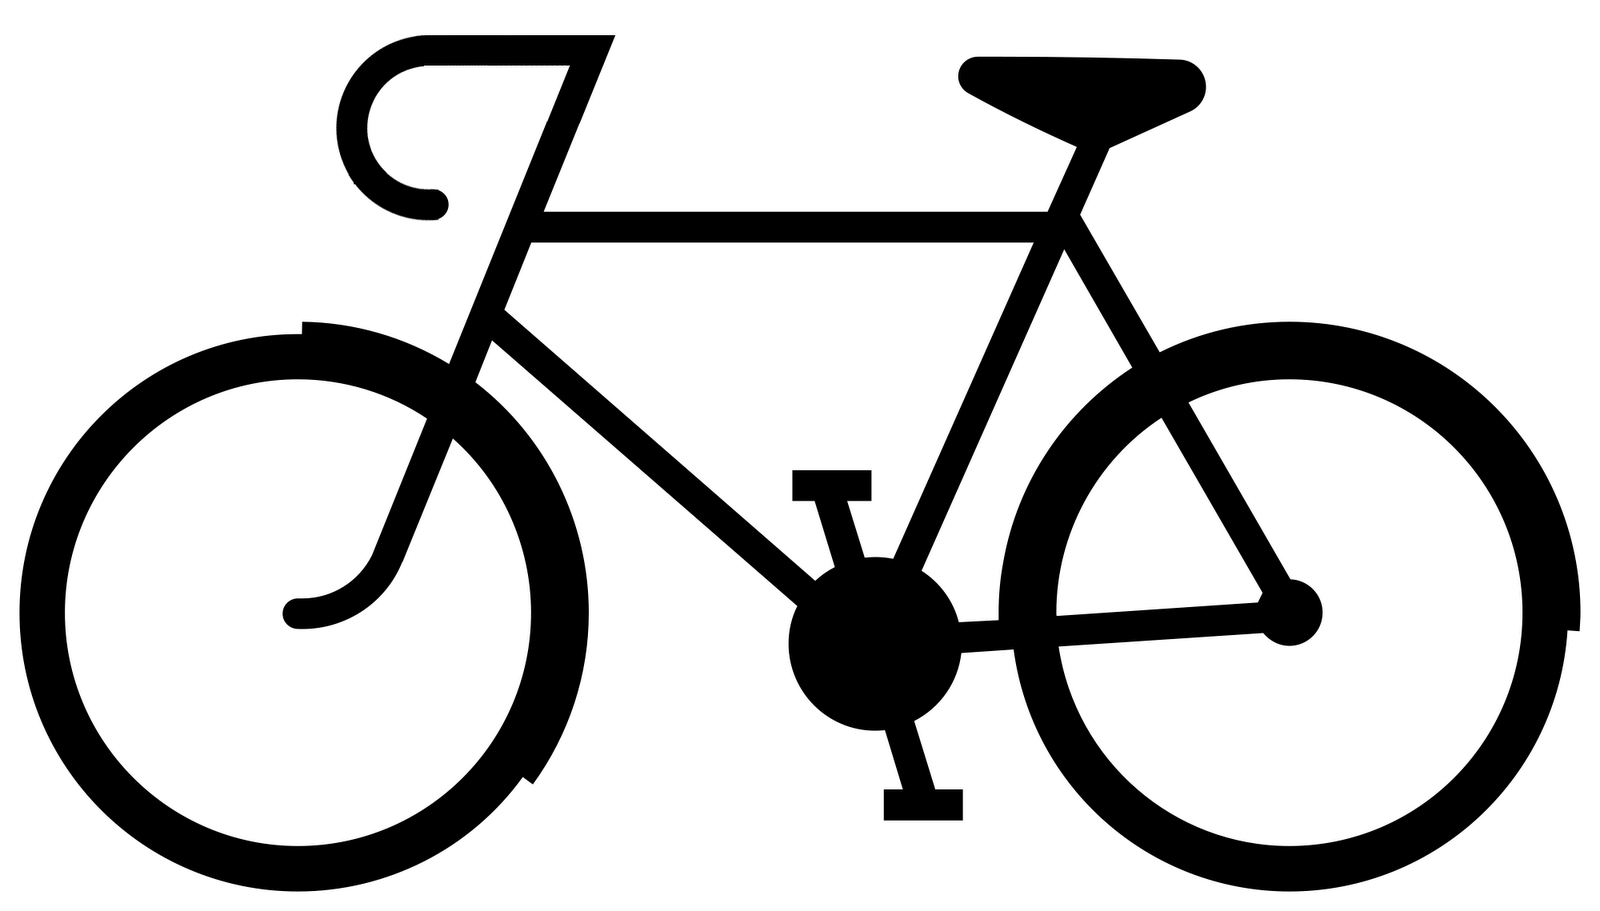 1600x911 Simple Drawing Of A Bike Clip Art Bicycle Route Sign Black White